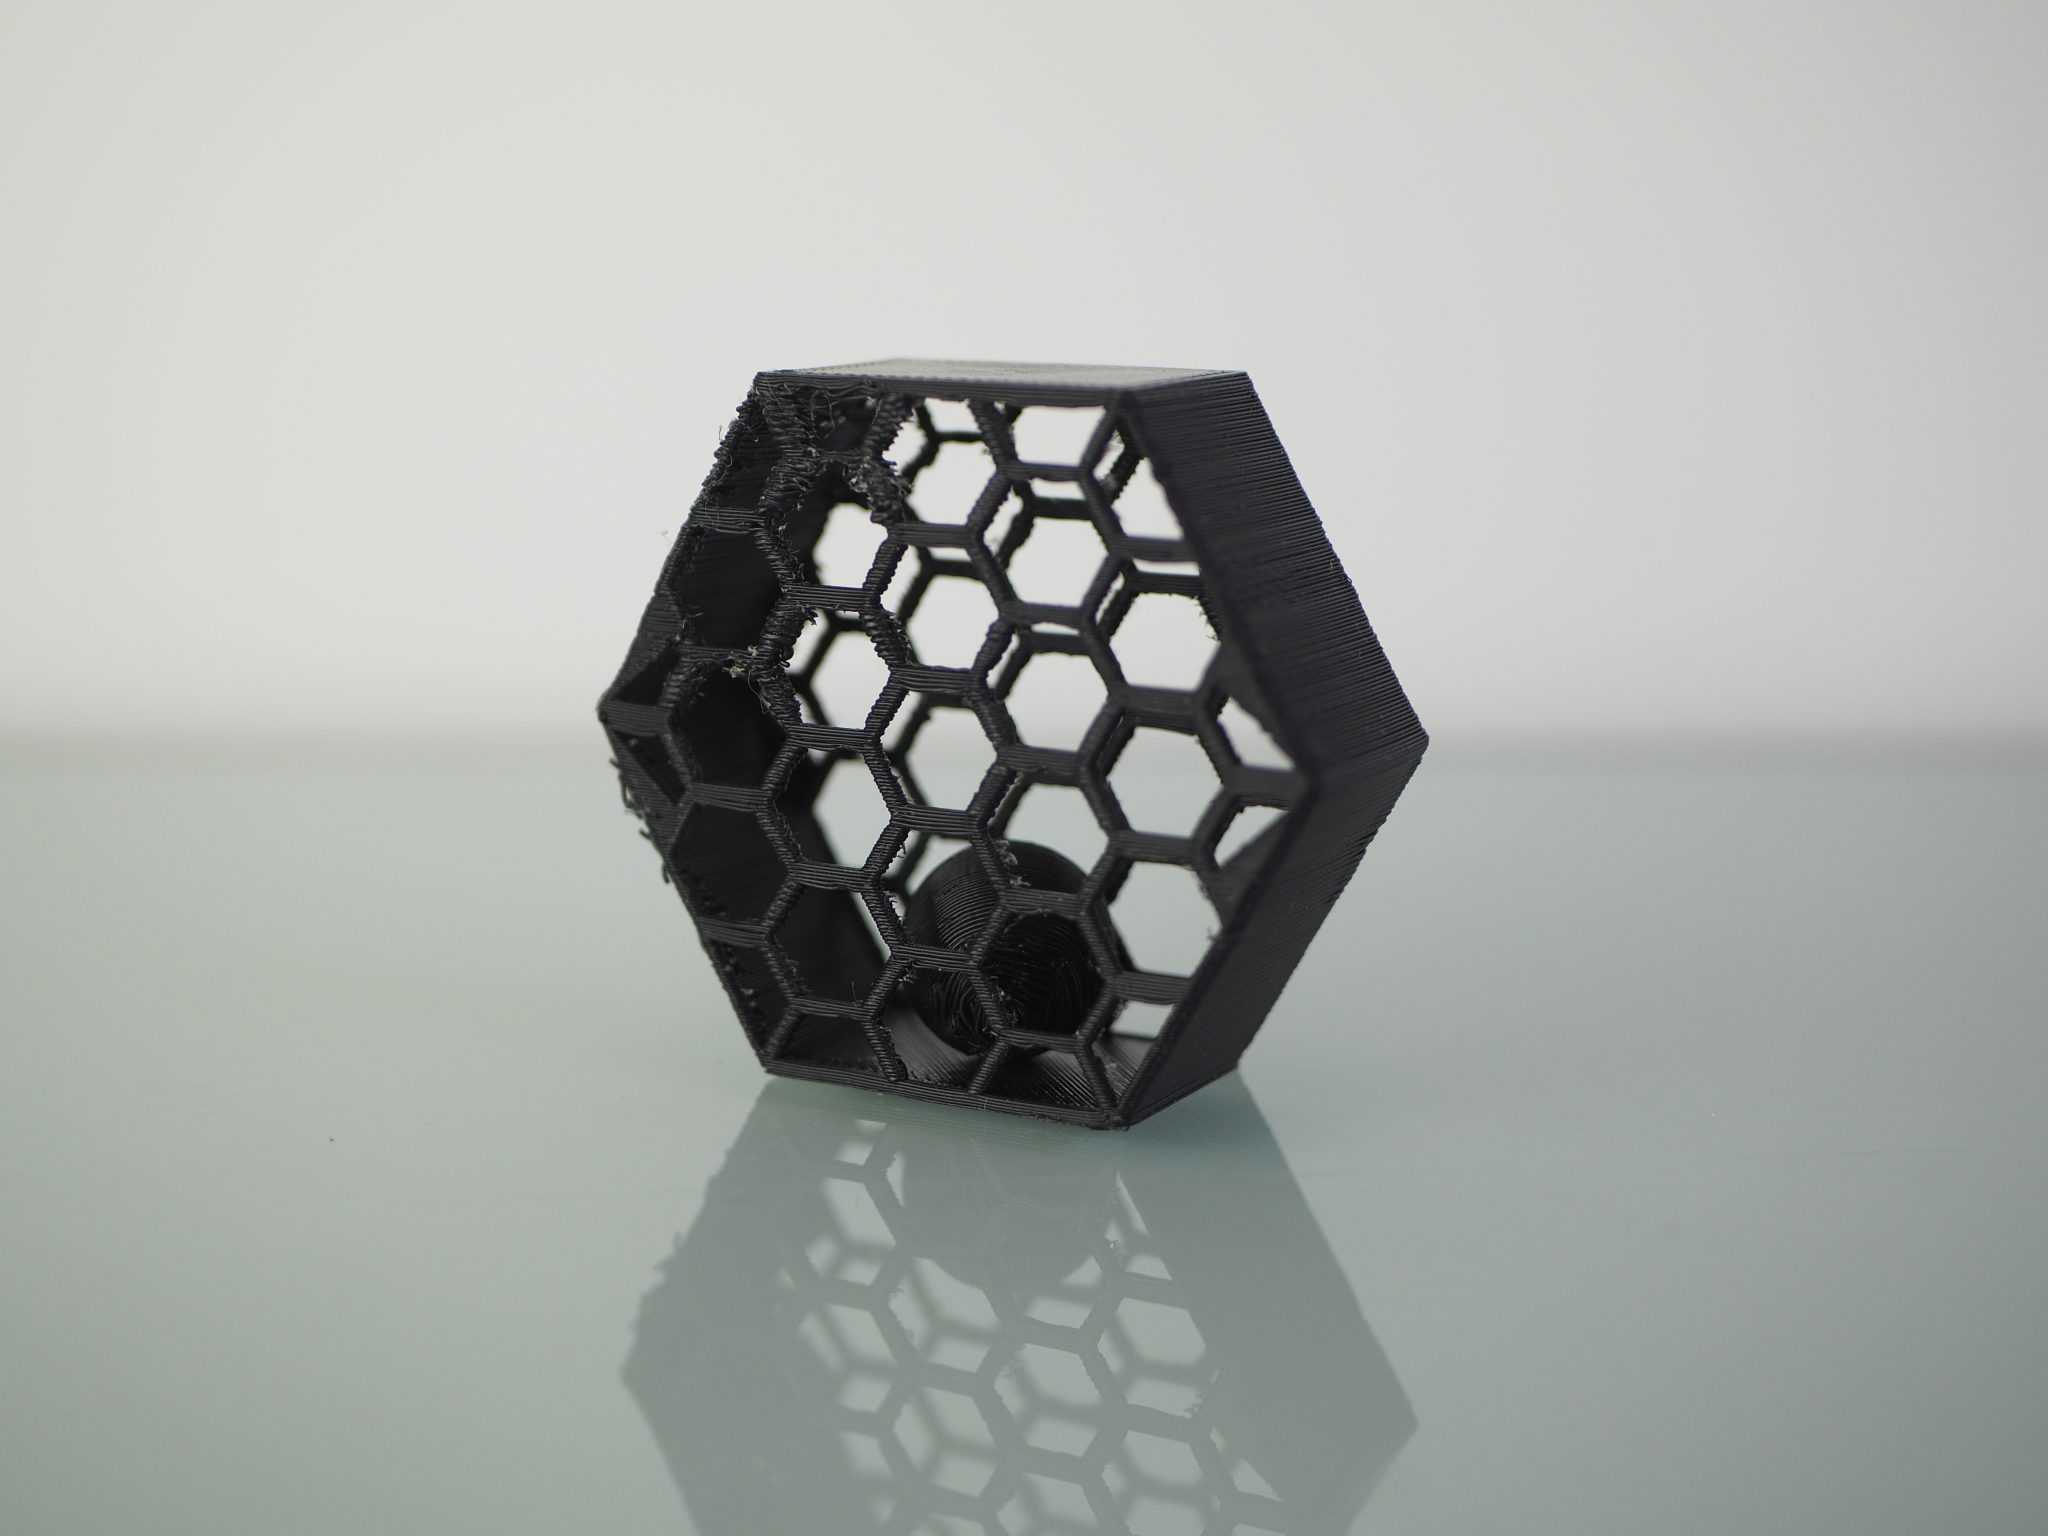 Test de double extrusion «boule dans une cage». Photo de l'industrie de l'impression 3D.